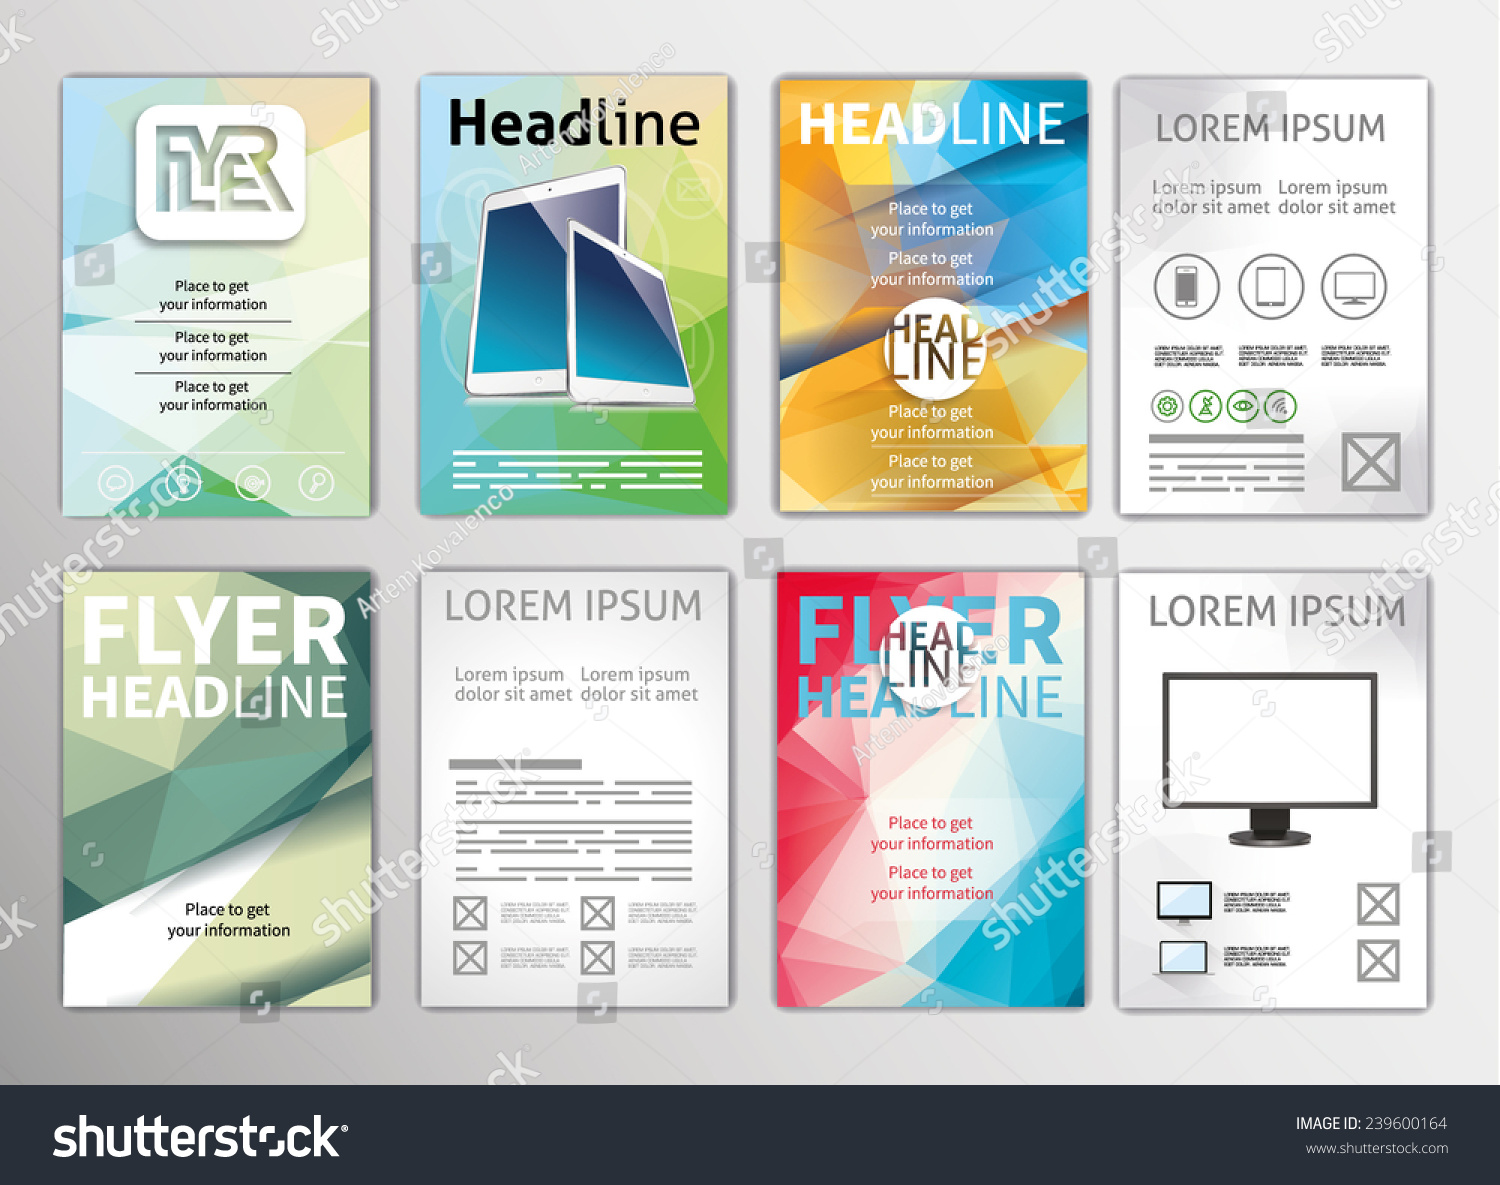 vector set flyers templates brochures a stock vector  vector set of flyers templates brochures a4 size abstract examples